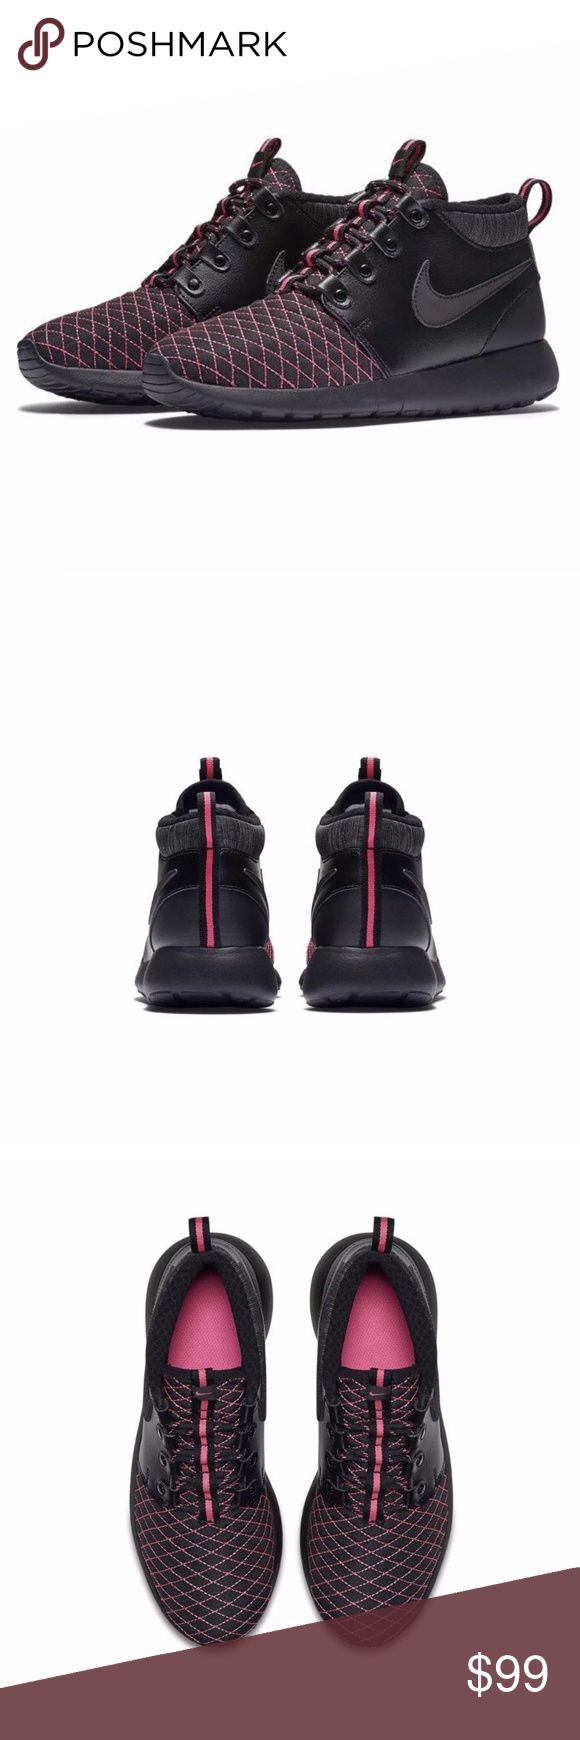 NIKE ROSHE ONE MID WINTER Womens Sz 8.5 Kid 7Y NIKE ROSHE ONE MID WINTER   STYLE 807576 001 Brand New with out Box Size: 7Y (equivalent to women's US 8.5)/UK 6/CM 25/EUR 40 Colors: Black/Pink Pow BRAND NEW NEVER WORN 100% AUTHENTIC! Nike Shoes Boots